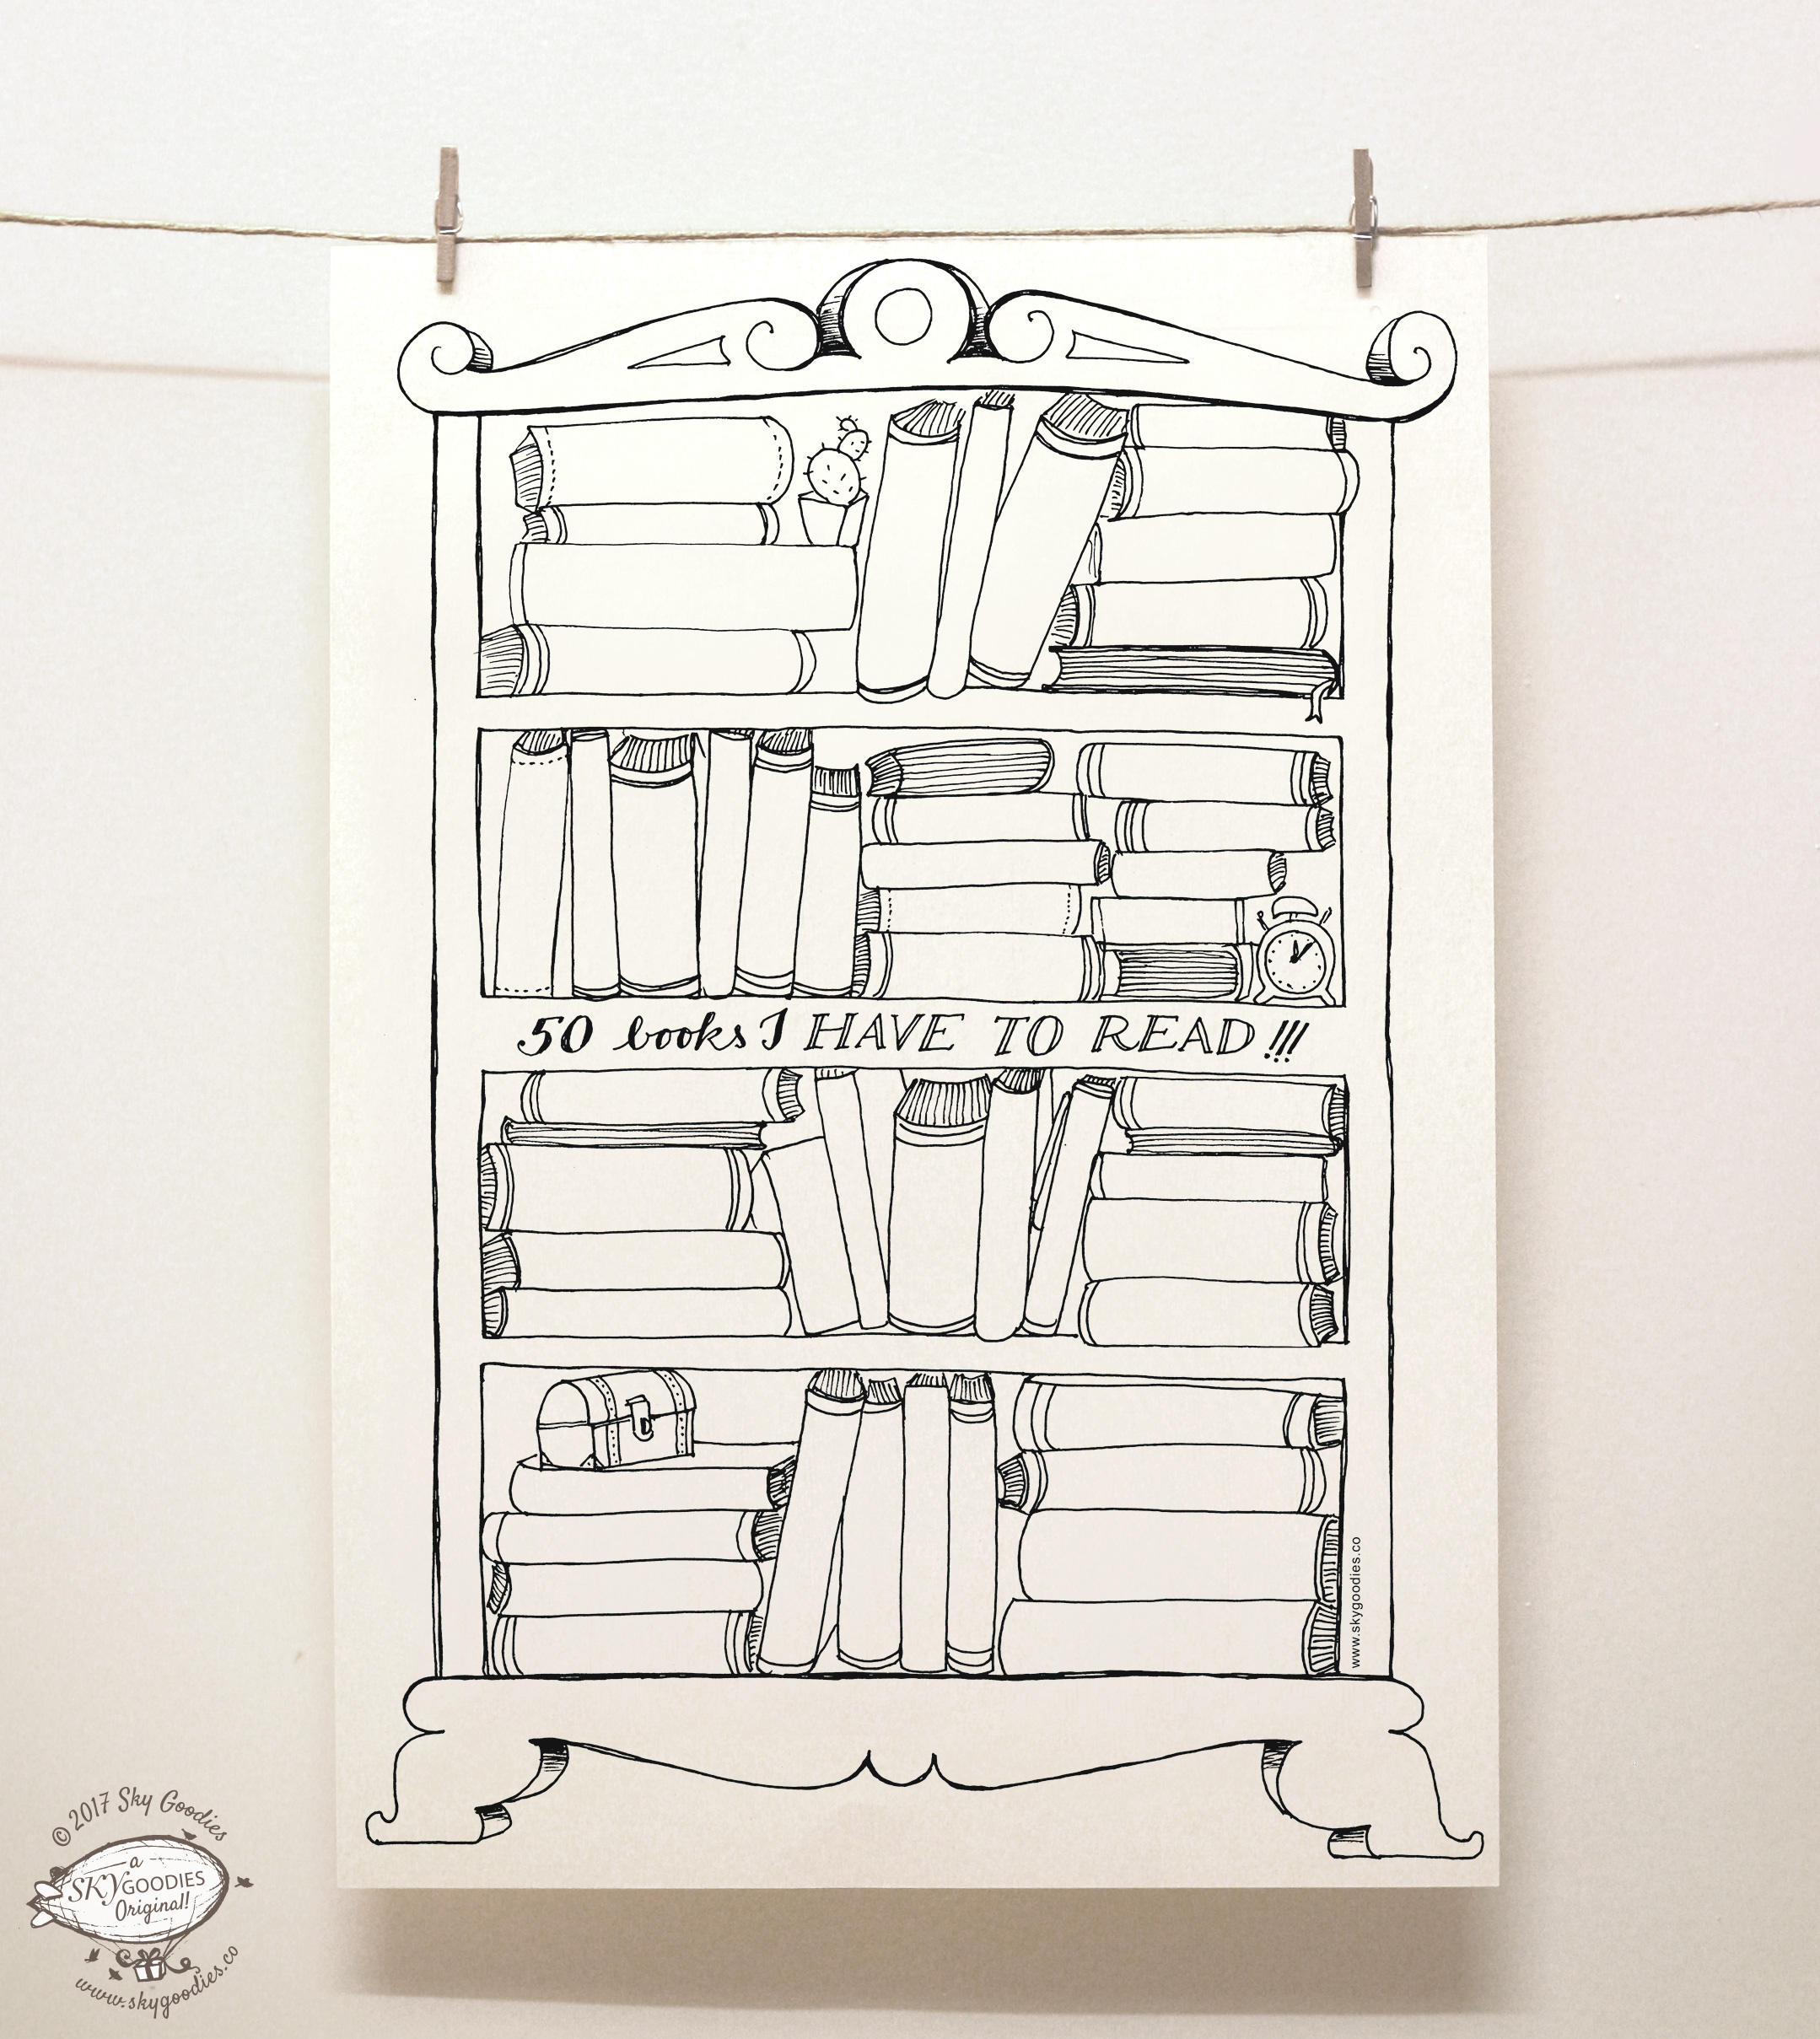 It's just an image of Remarkable Book List Printable